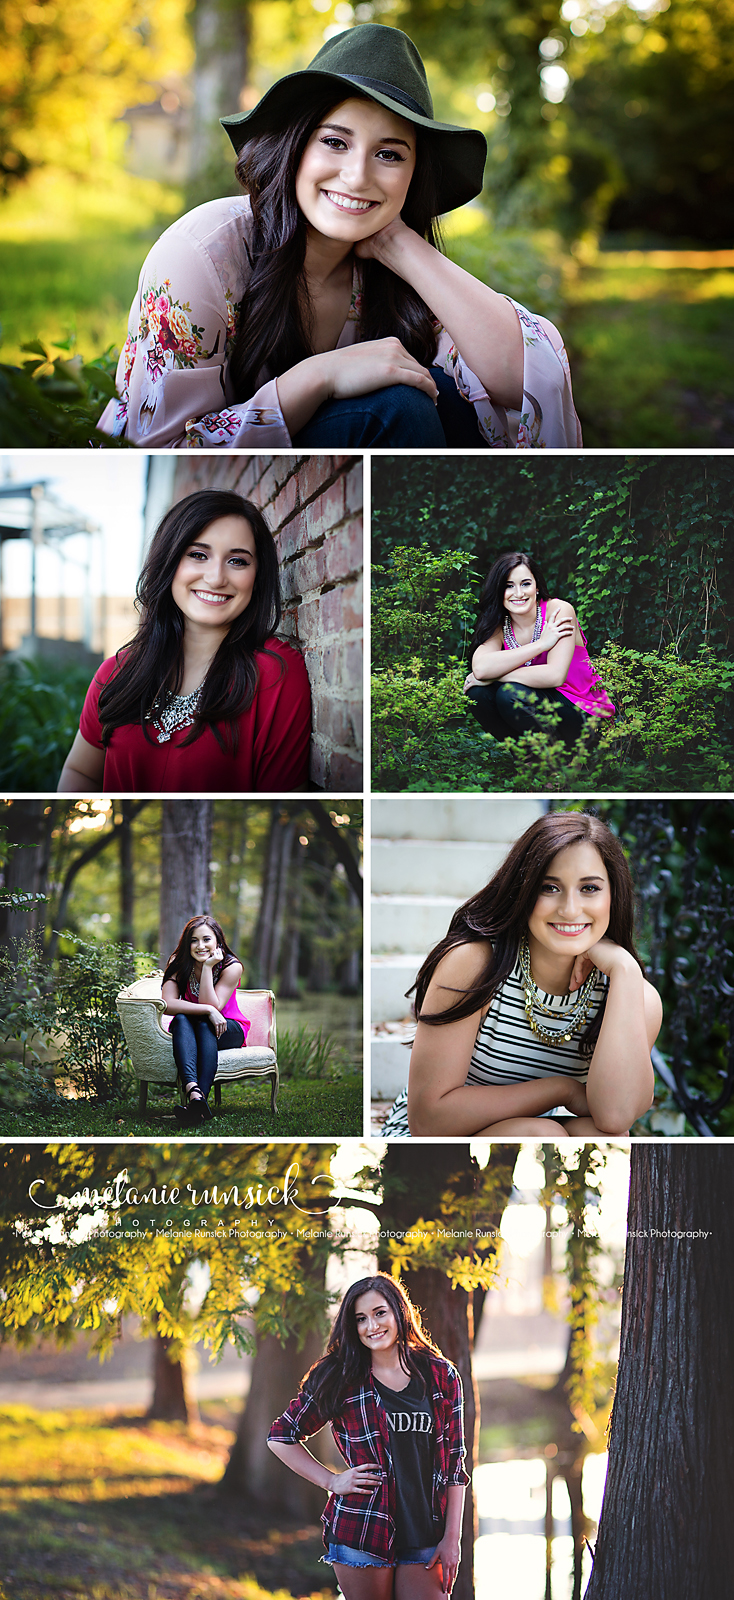 Jonesboro-Newport-Paragould-Tuckerman-Walnut Ridge-Batesville-Senior-Photographer